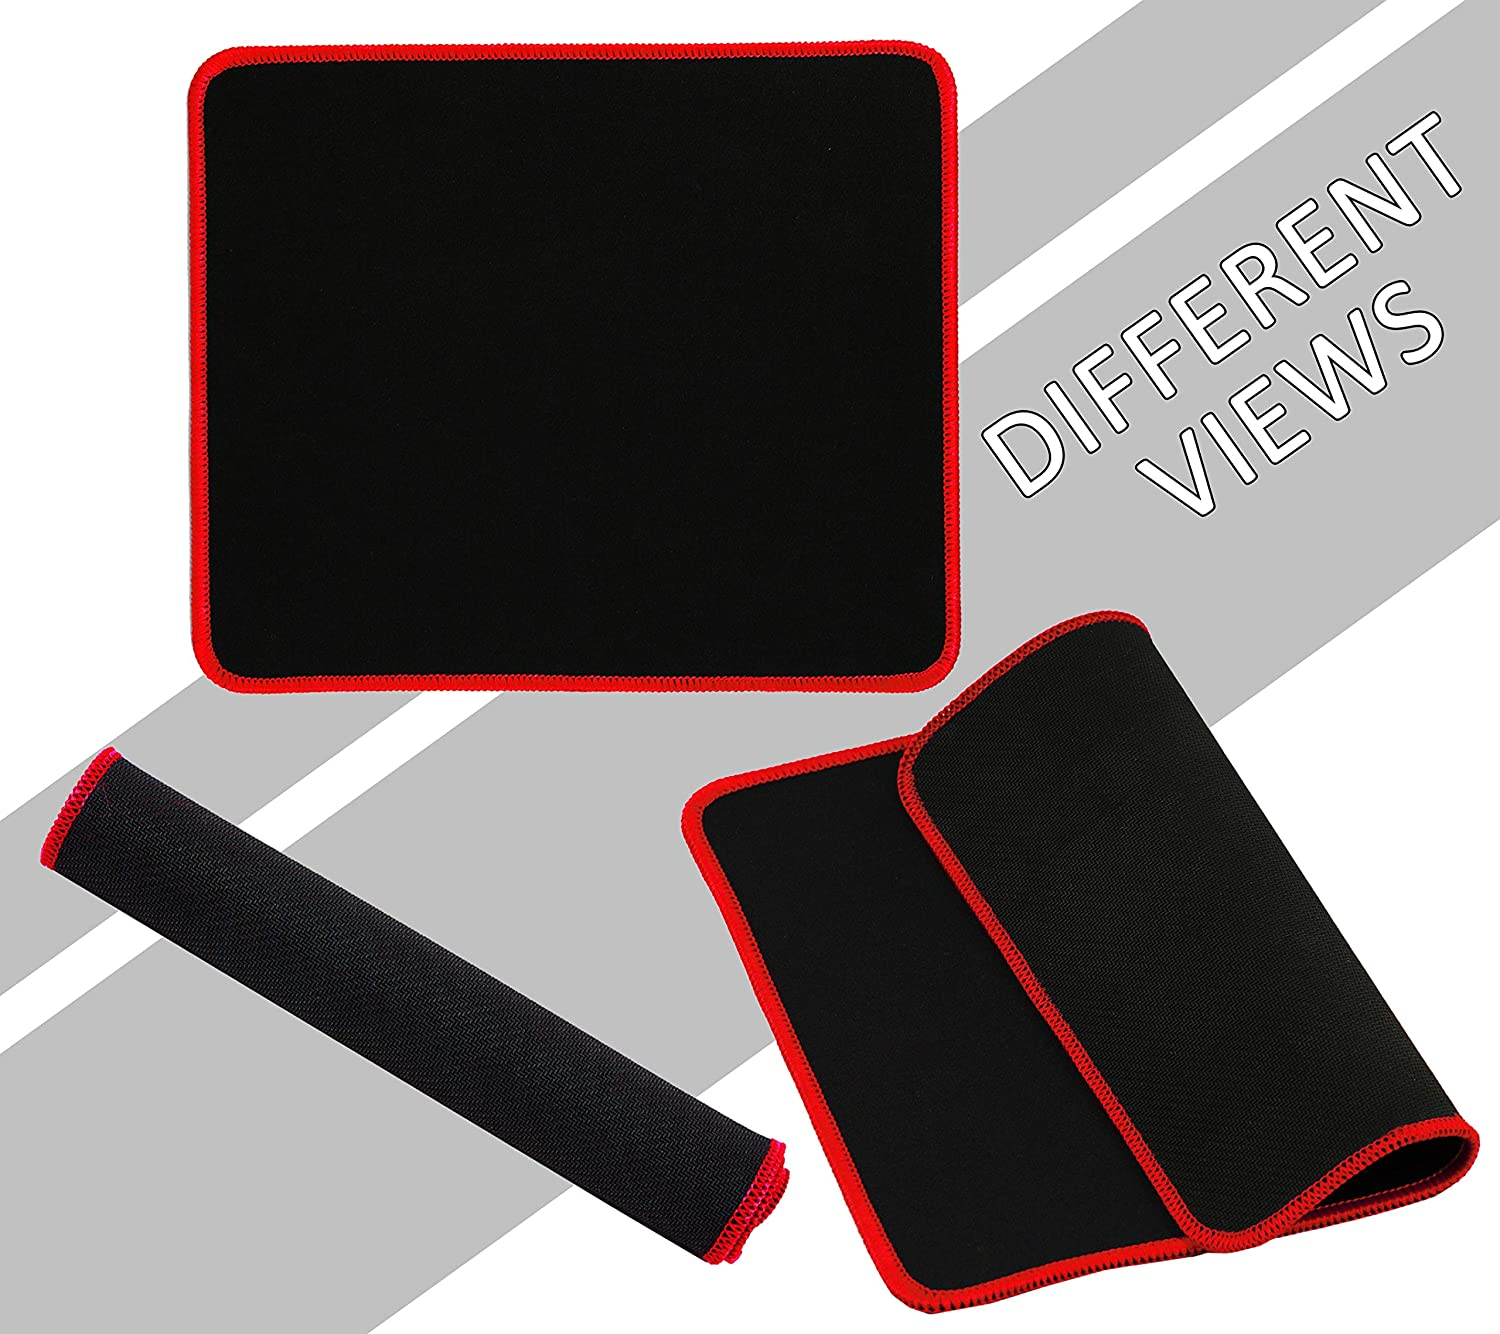 Offices /& Home 25 Pack 2mm Laptops SNDIA Mouse Pads with Non-Slip Rubber Base with Stitched Edges for Computers